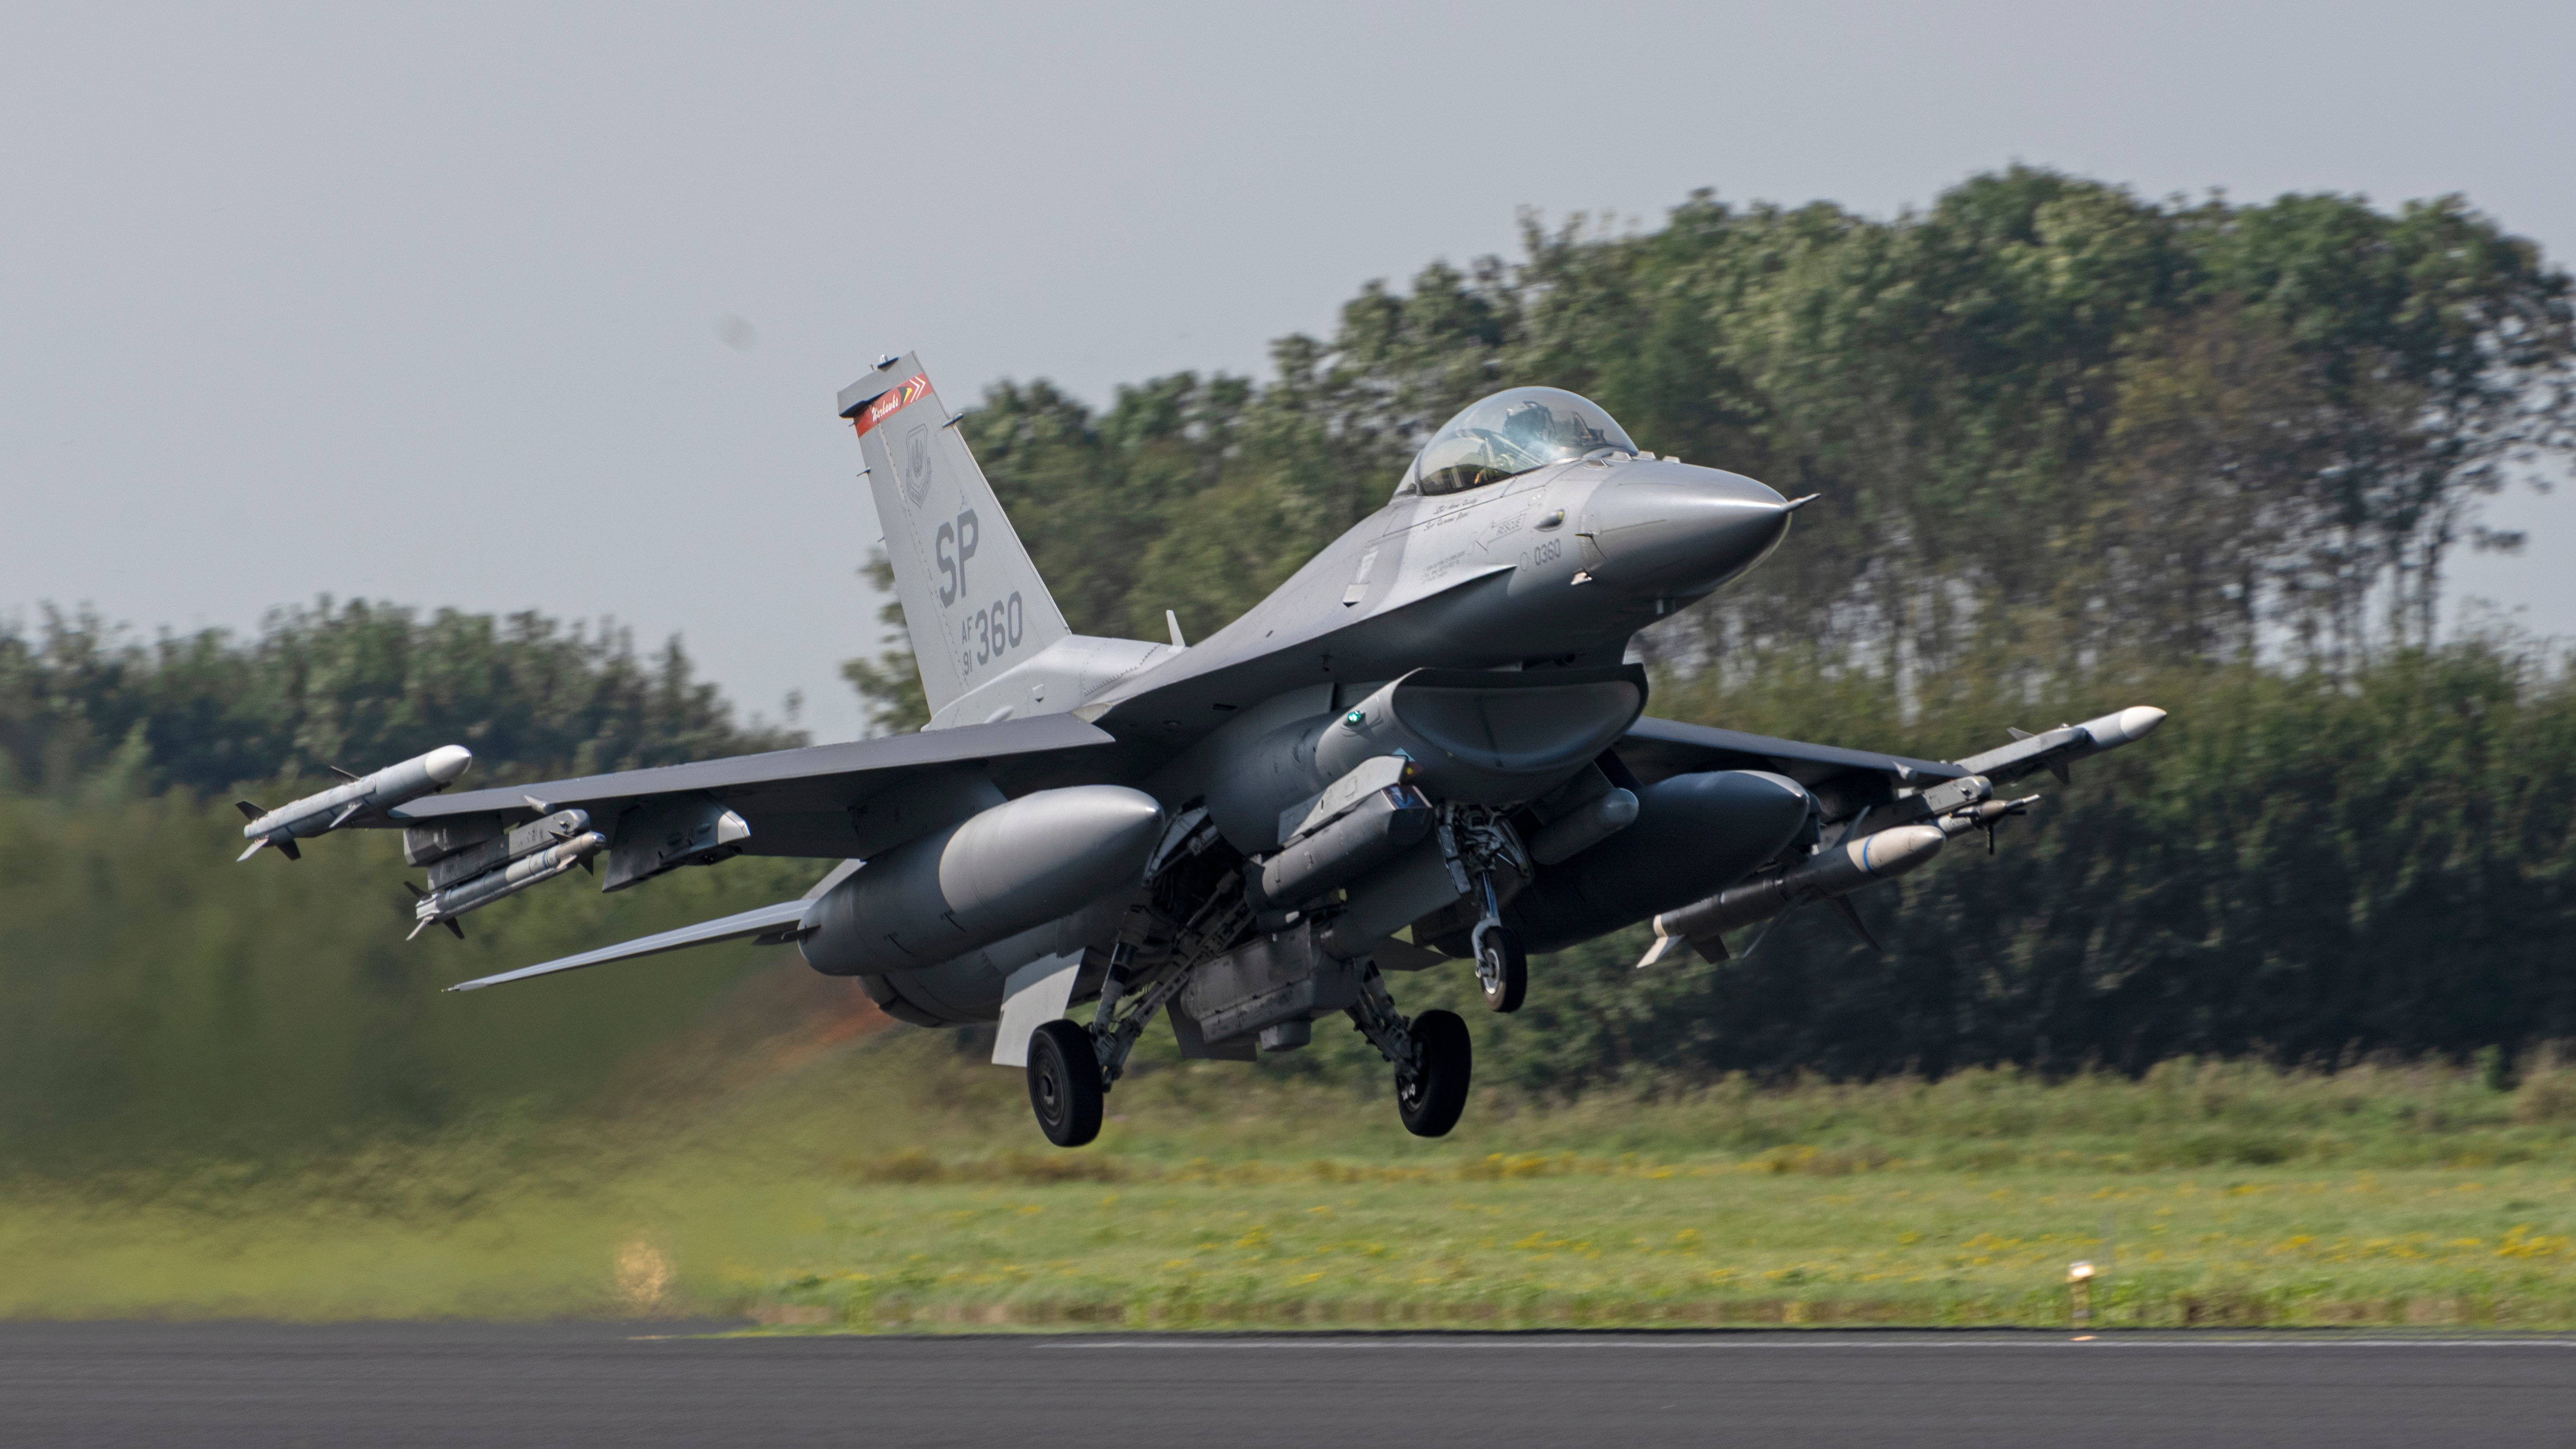 480th FS F-16C takes off from Leeuwarden 14-09-21 [USAF/Tech Sgt Anthony Plyler]